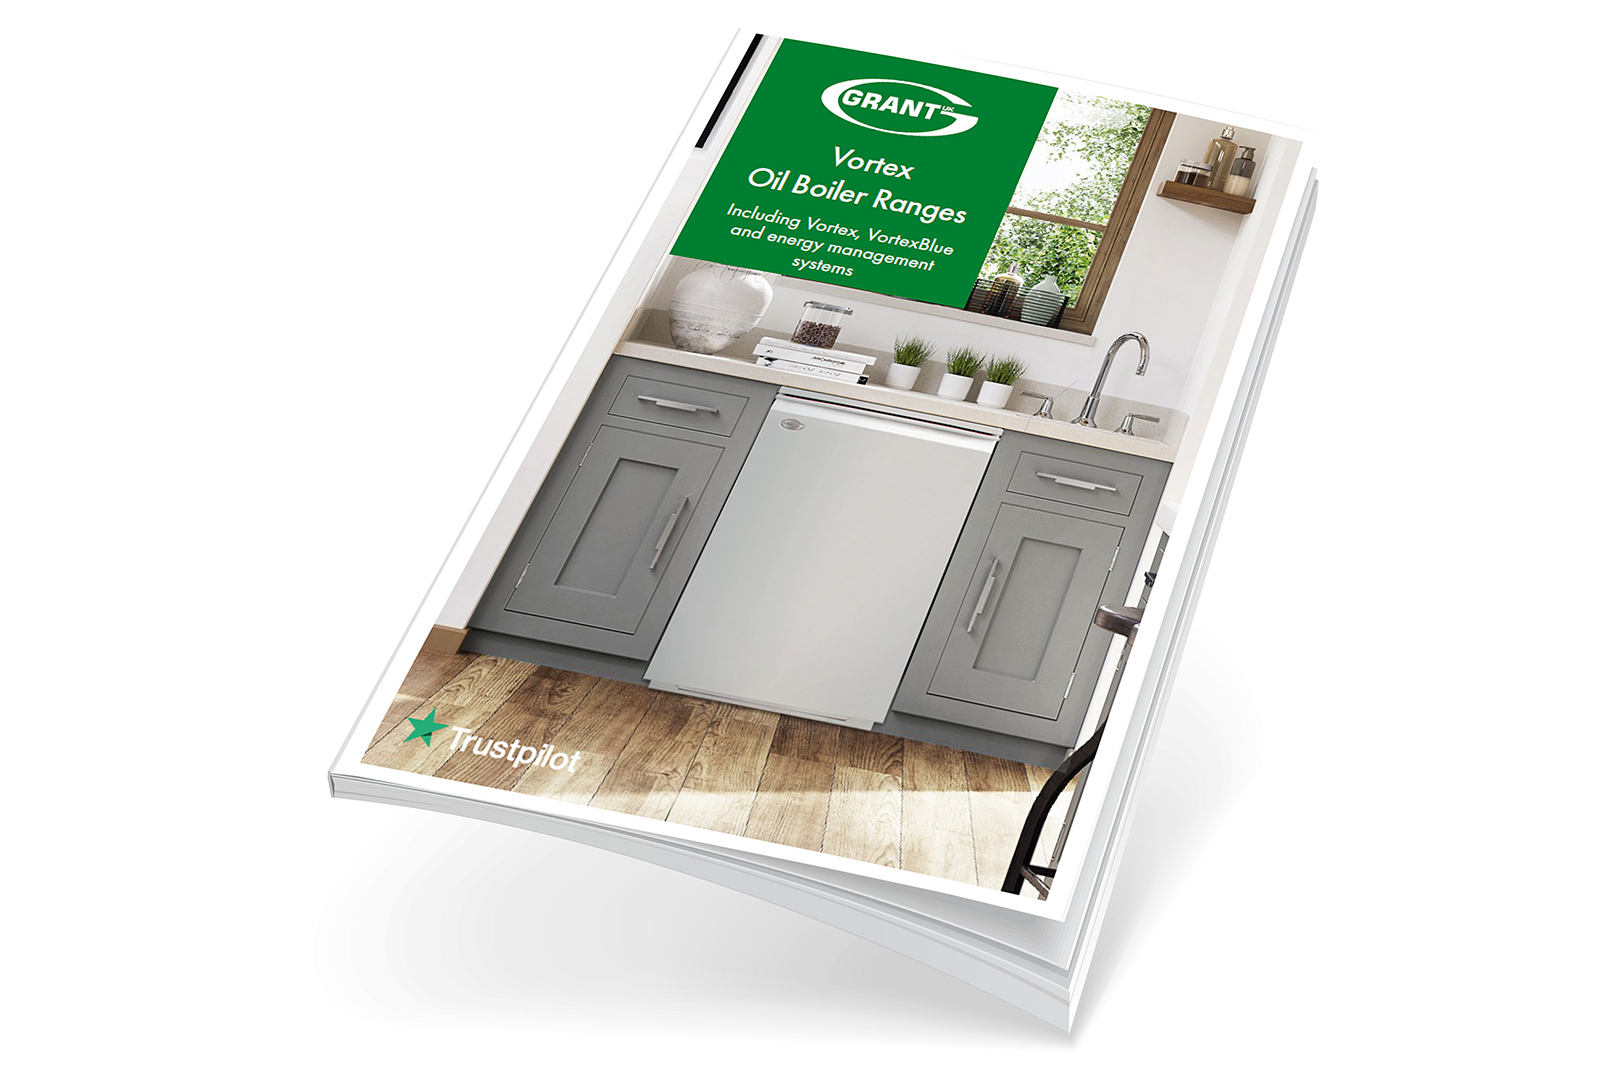 Grant UK unveils new oil boiler brochure